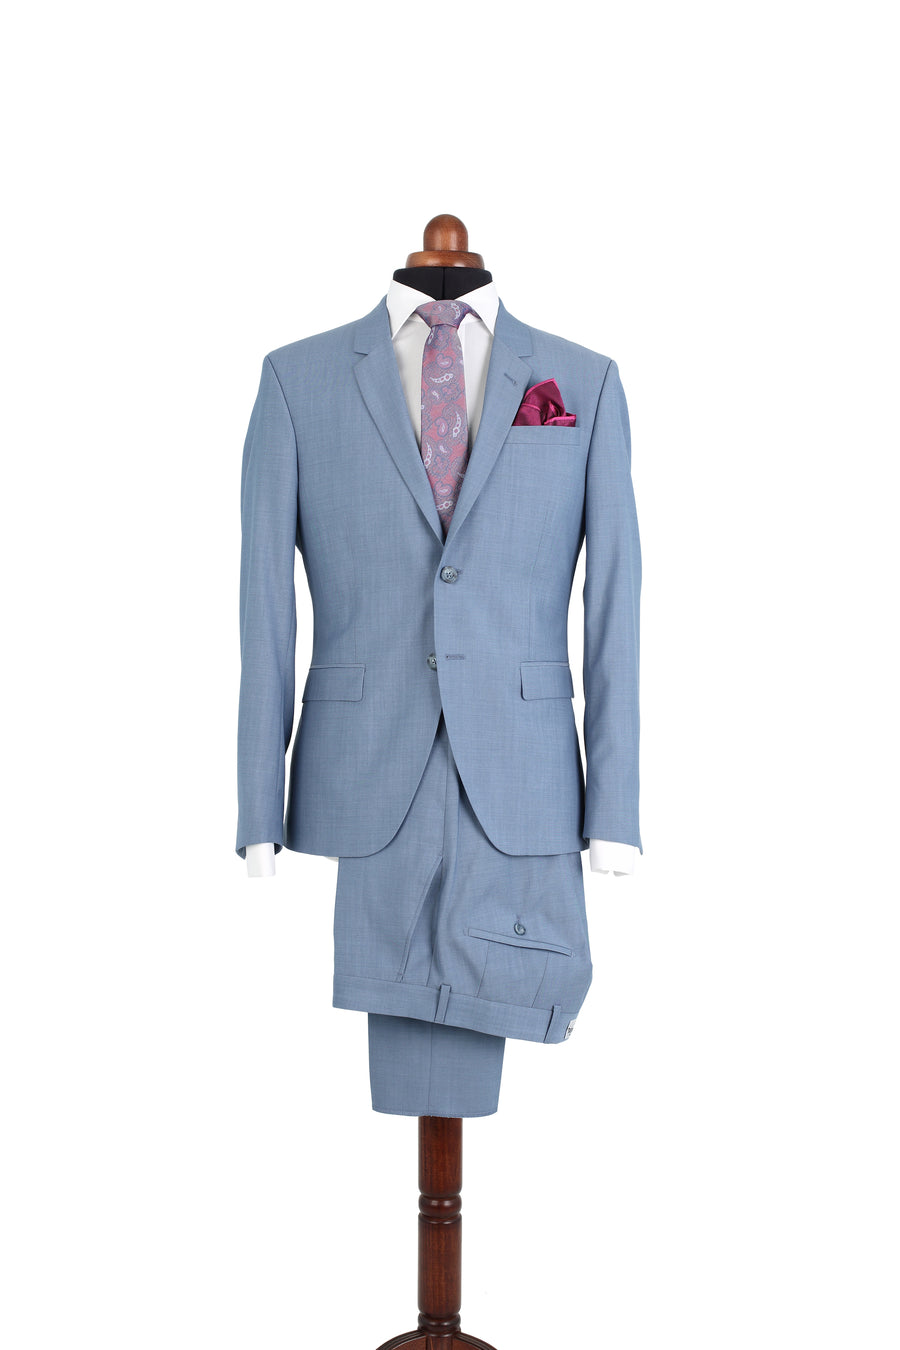 LIGHT BLUE SUIT